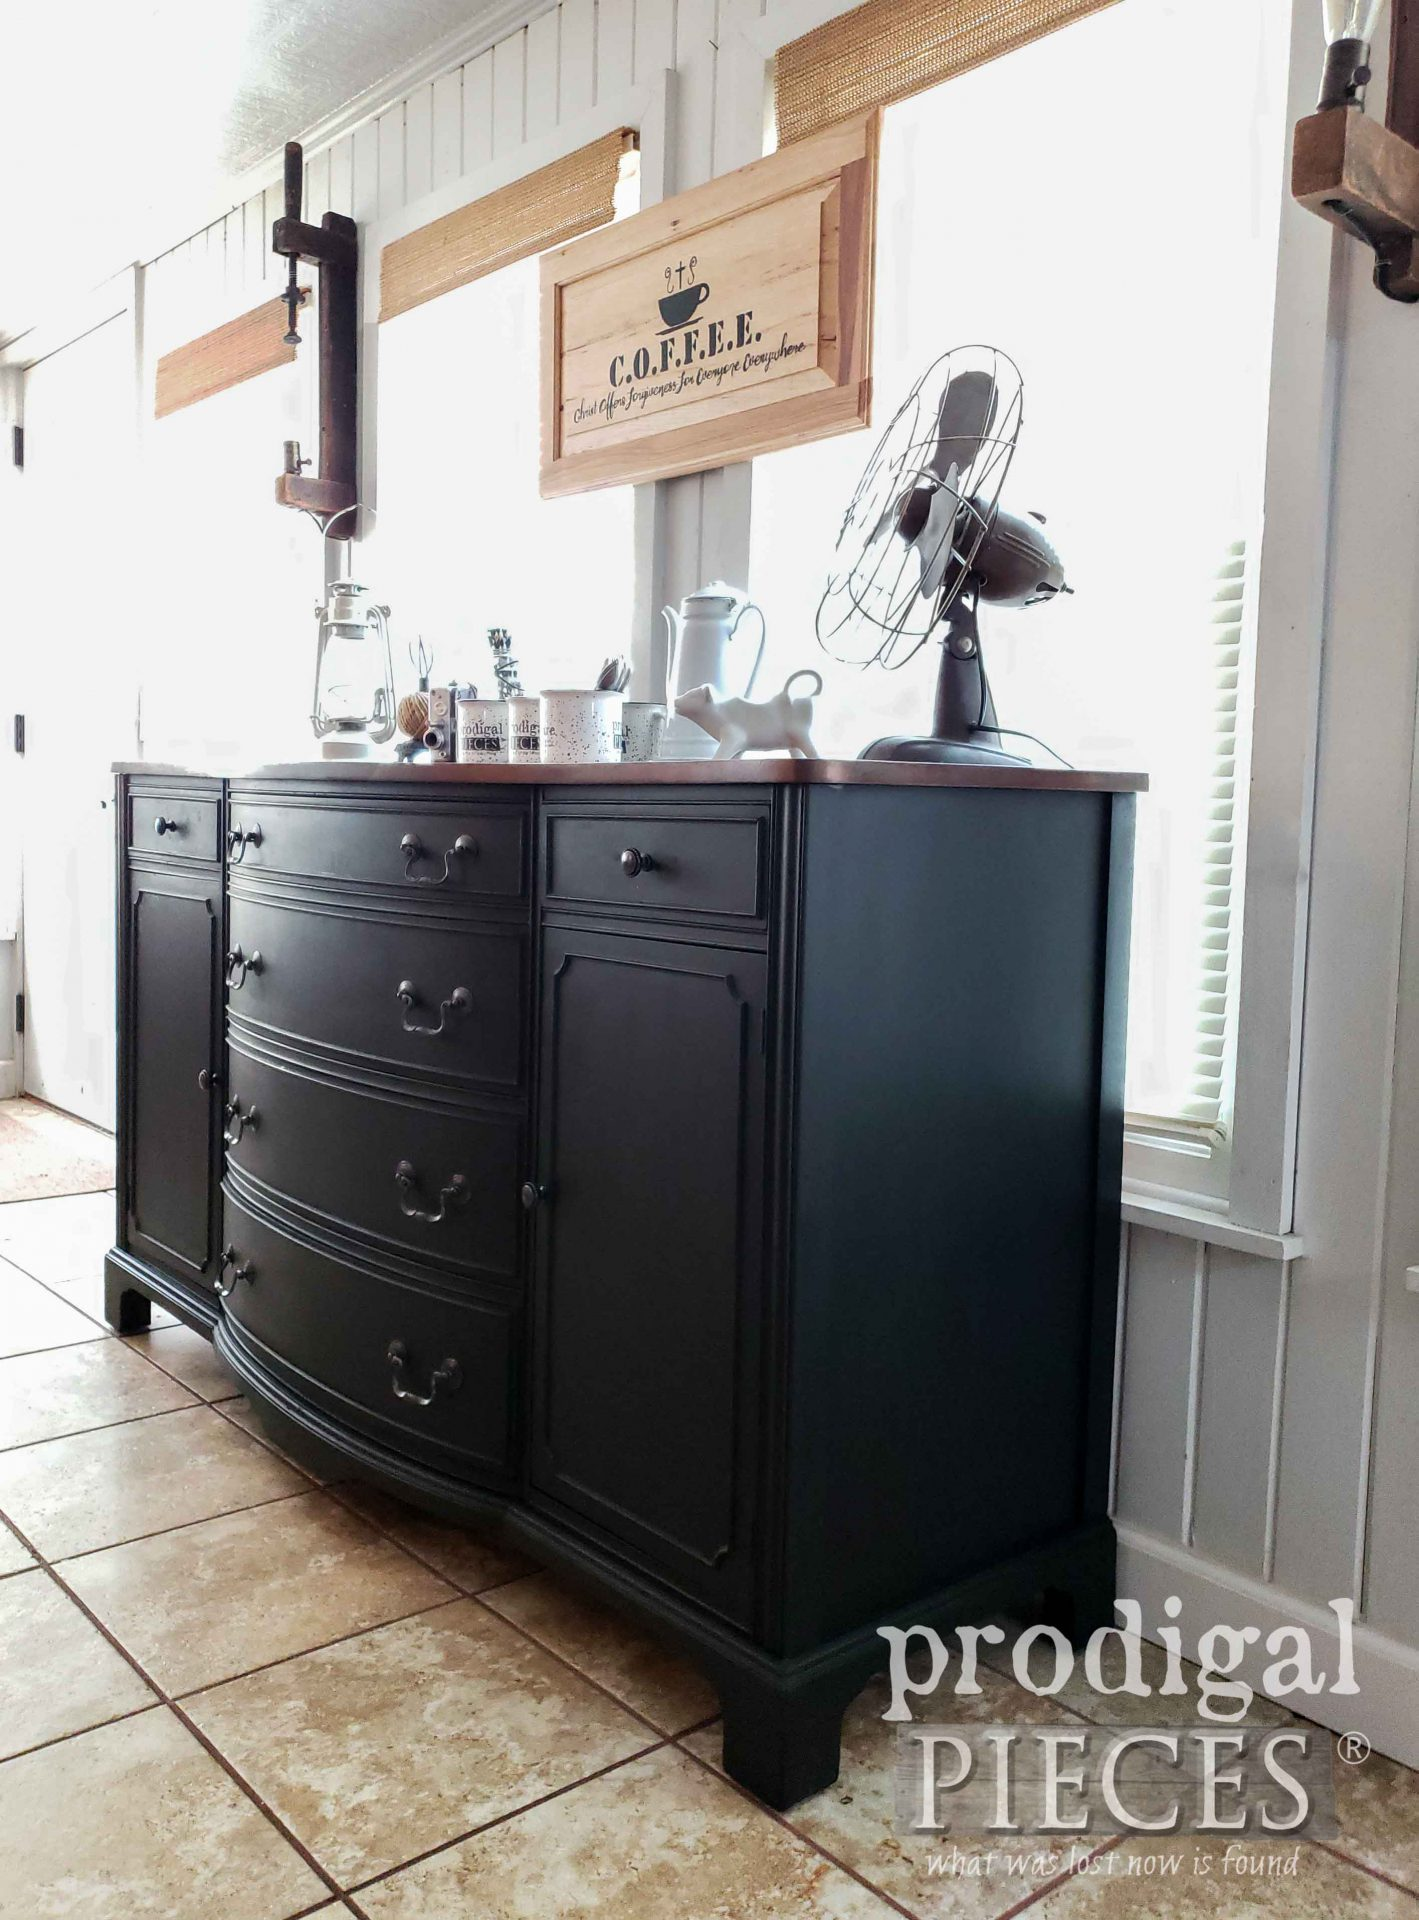 Vintage Bow Front Buffet in Black by Larissa of Prodigal Pieces | prodigalpieces.com #prodigalpieces #diy #home #farmhouse #homedecor #coffee